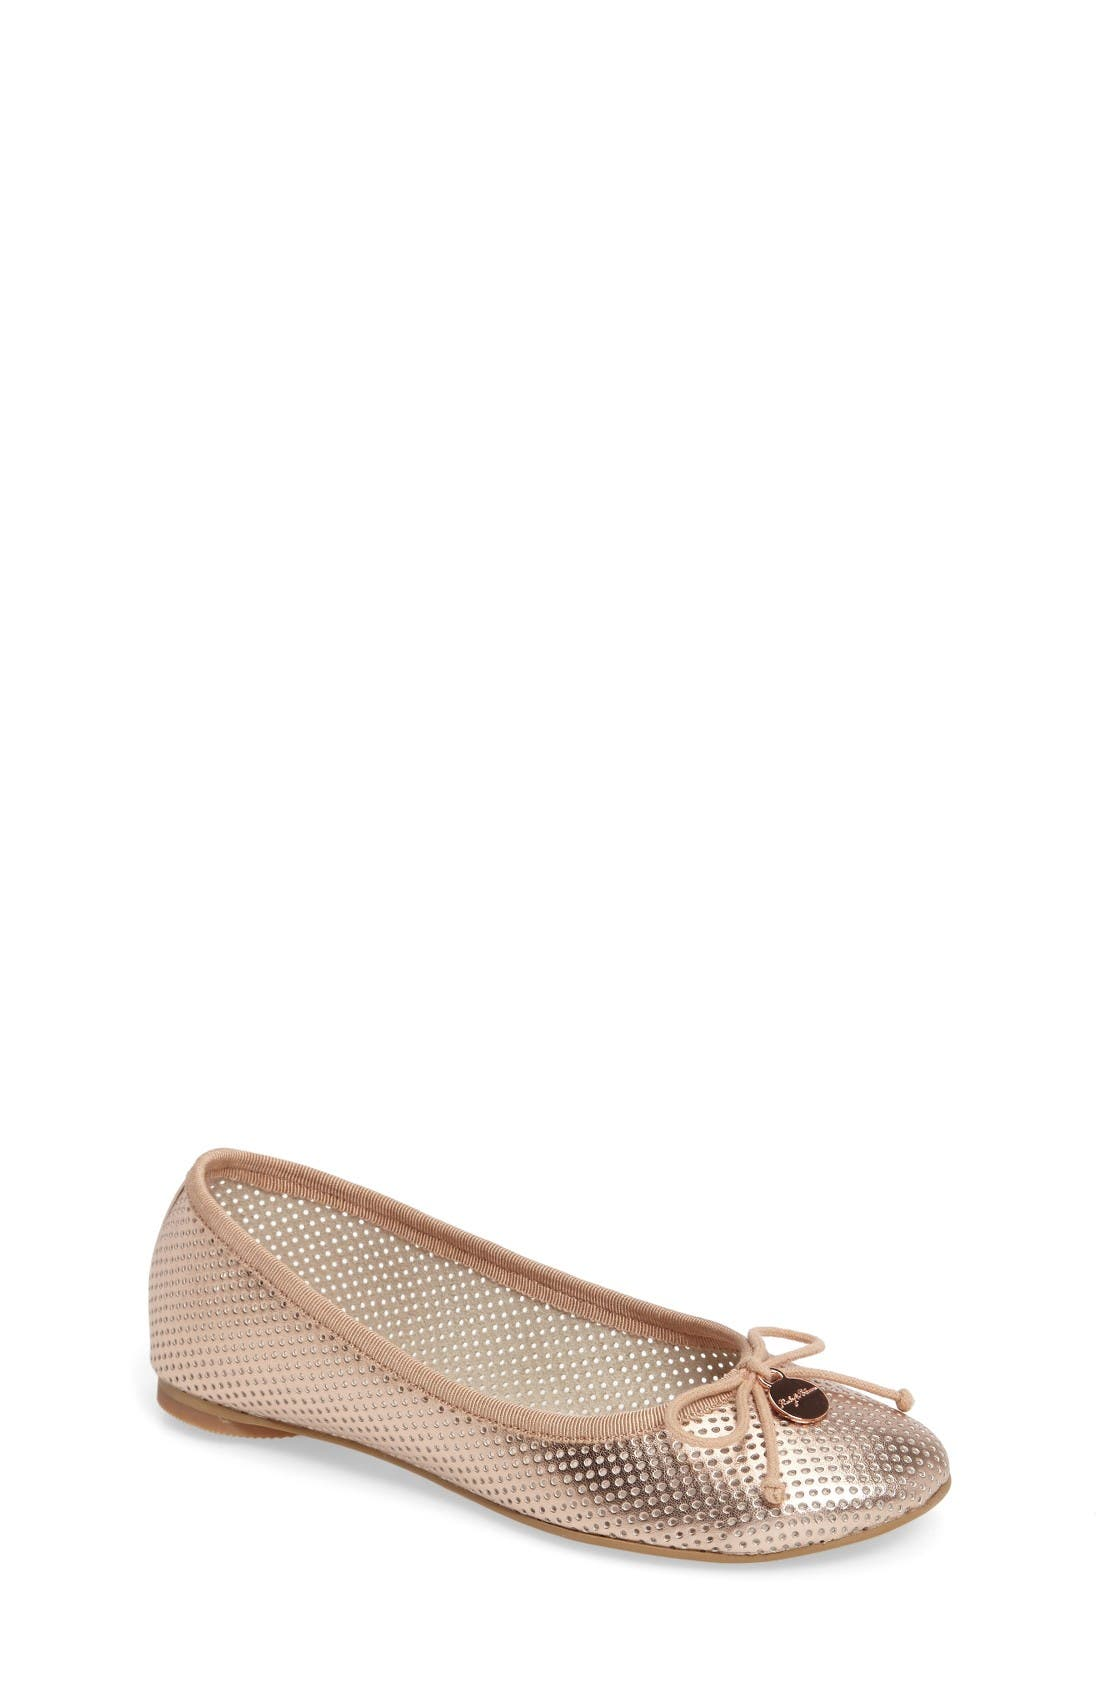 RUBY & BLOOM Bea Ballet Flat